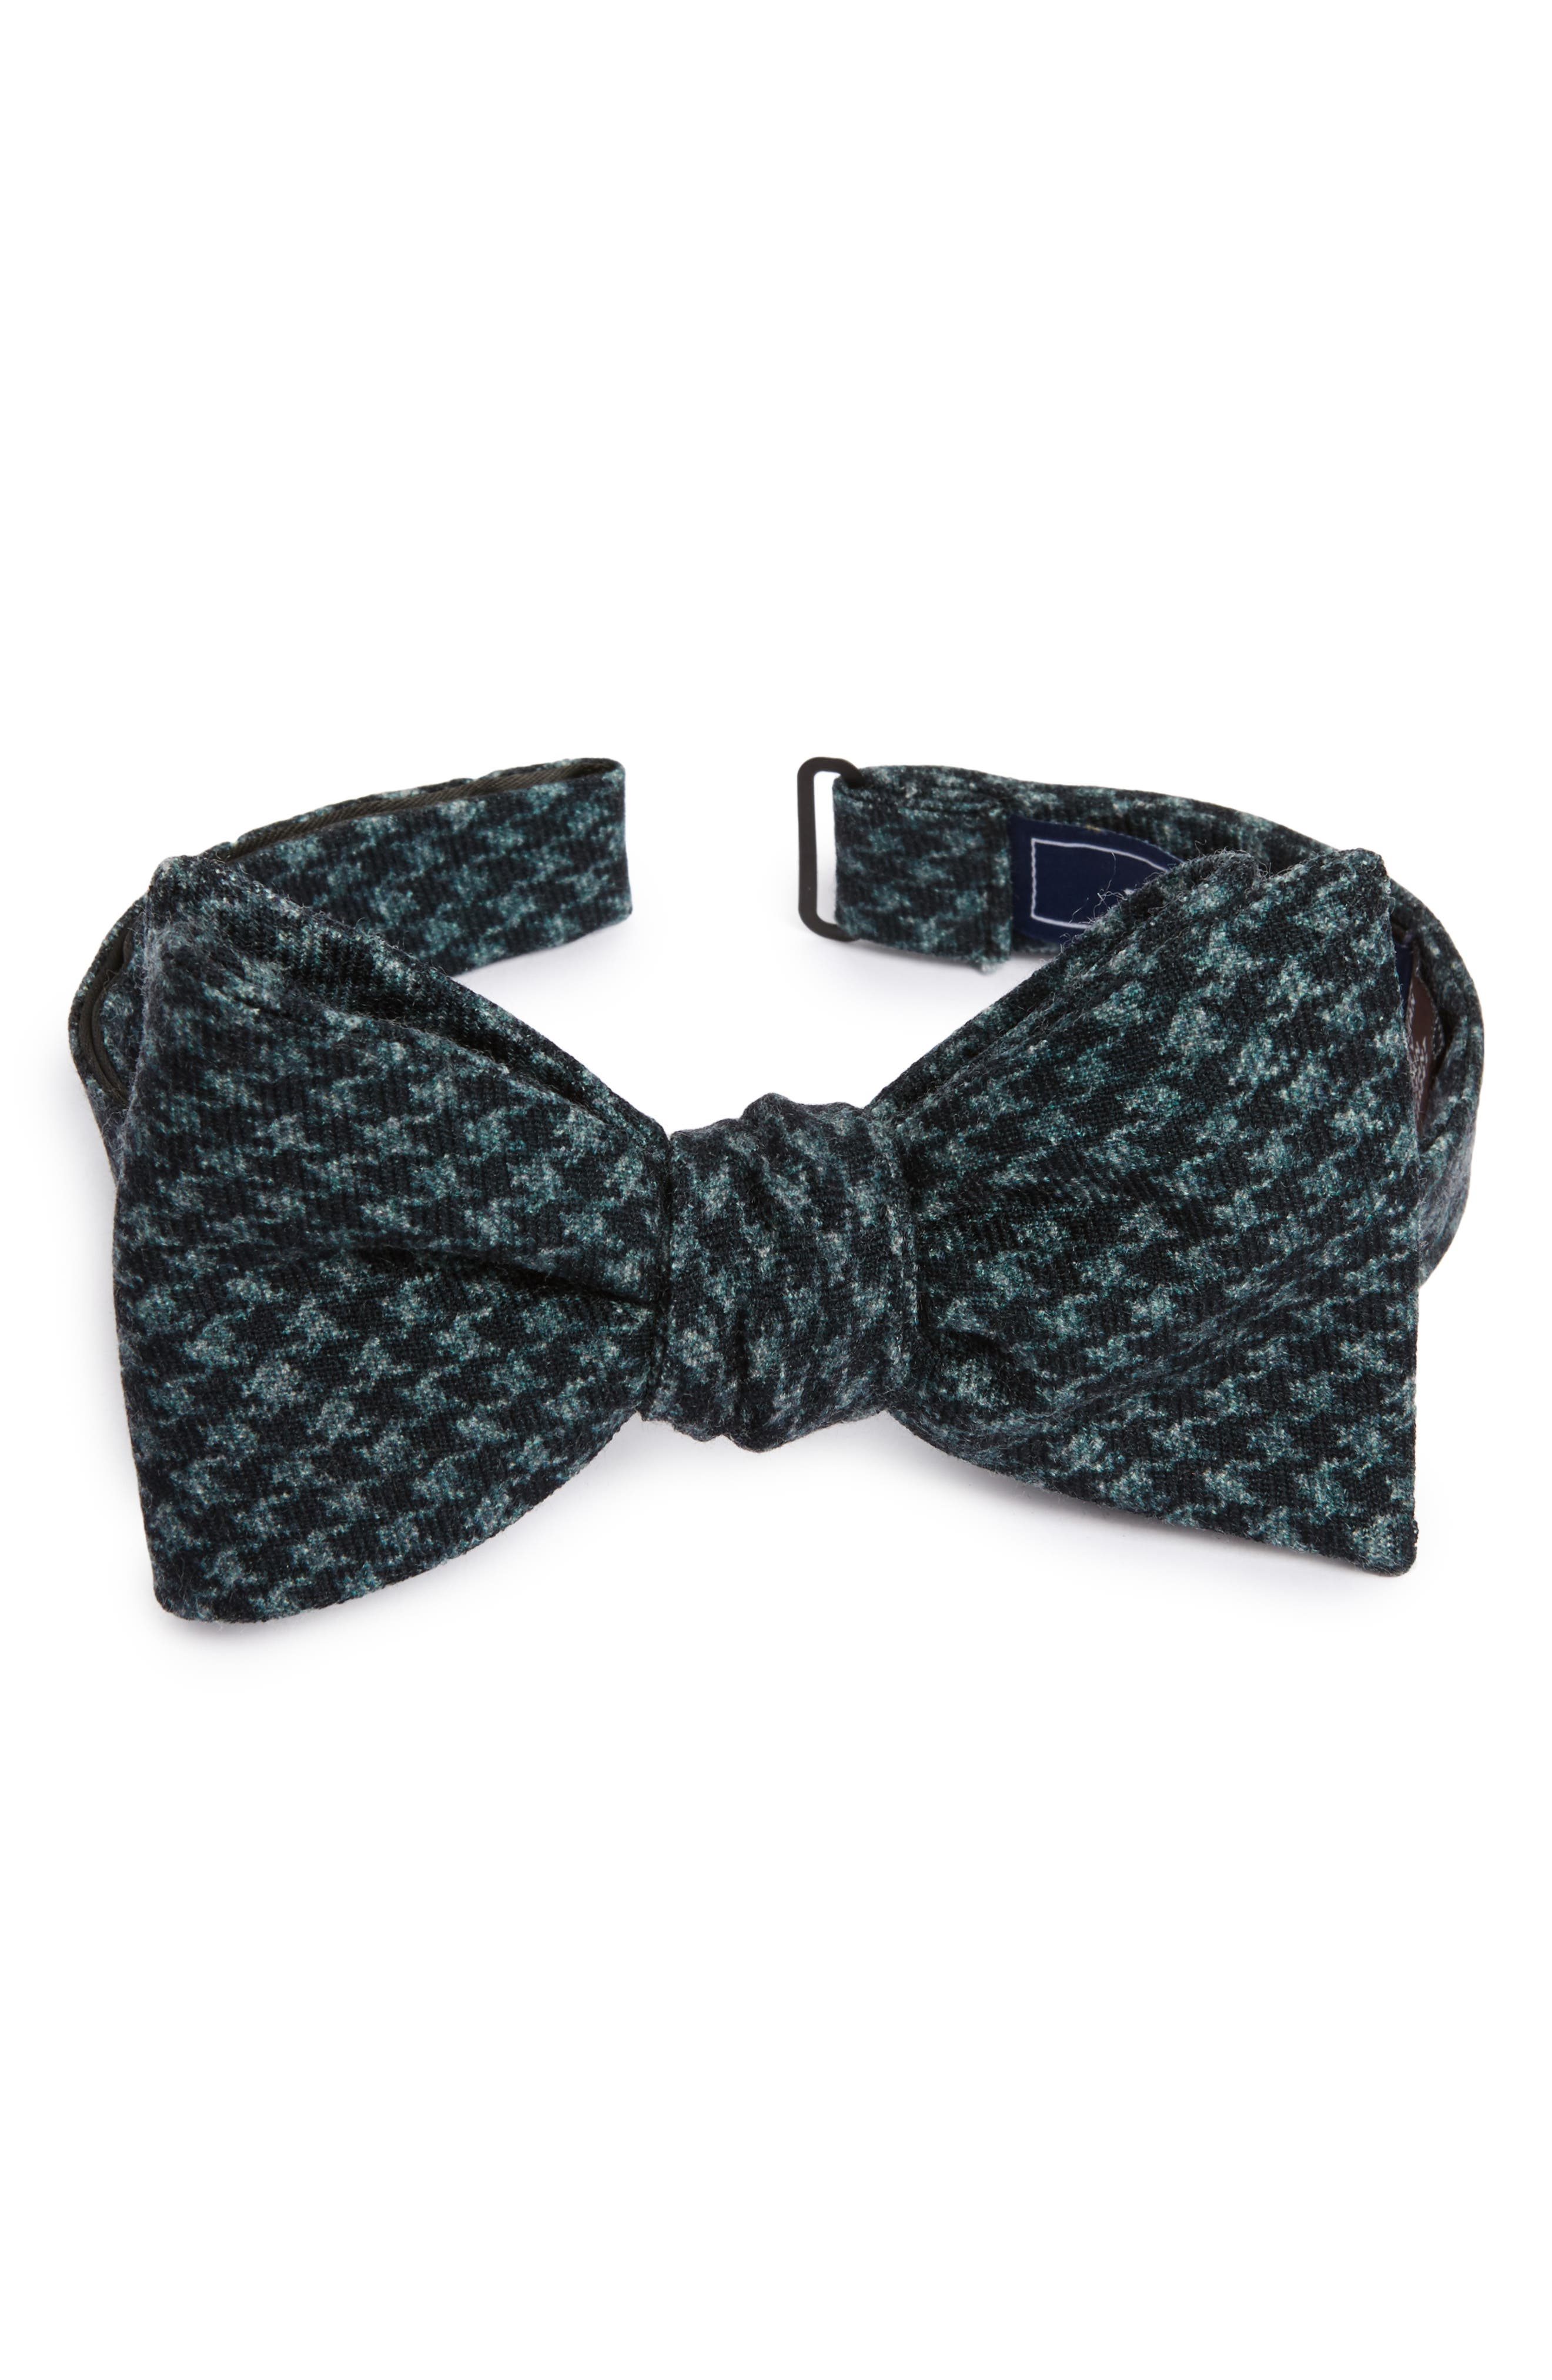 Woolf Houndstooth Wool Bow Tie,                             Main thumbnail 1, color,                             001